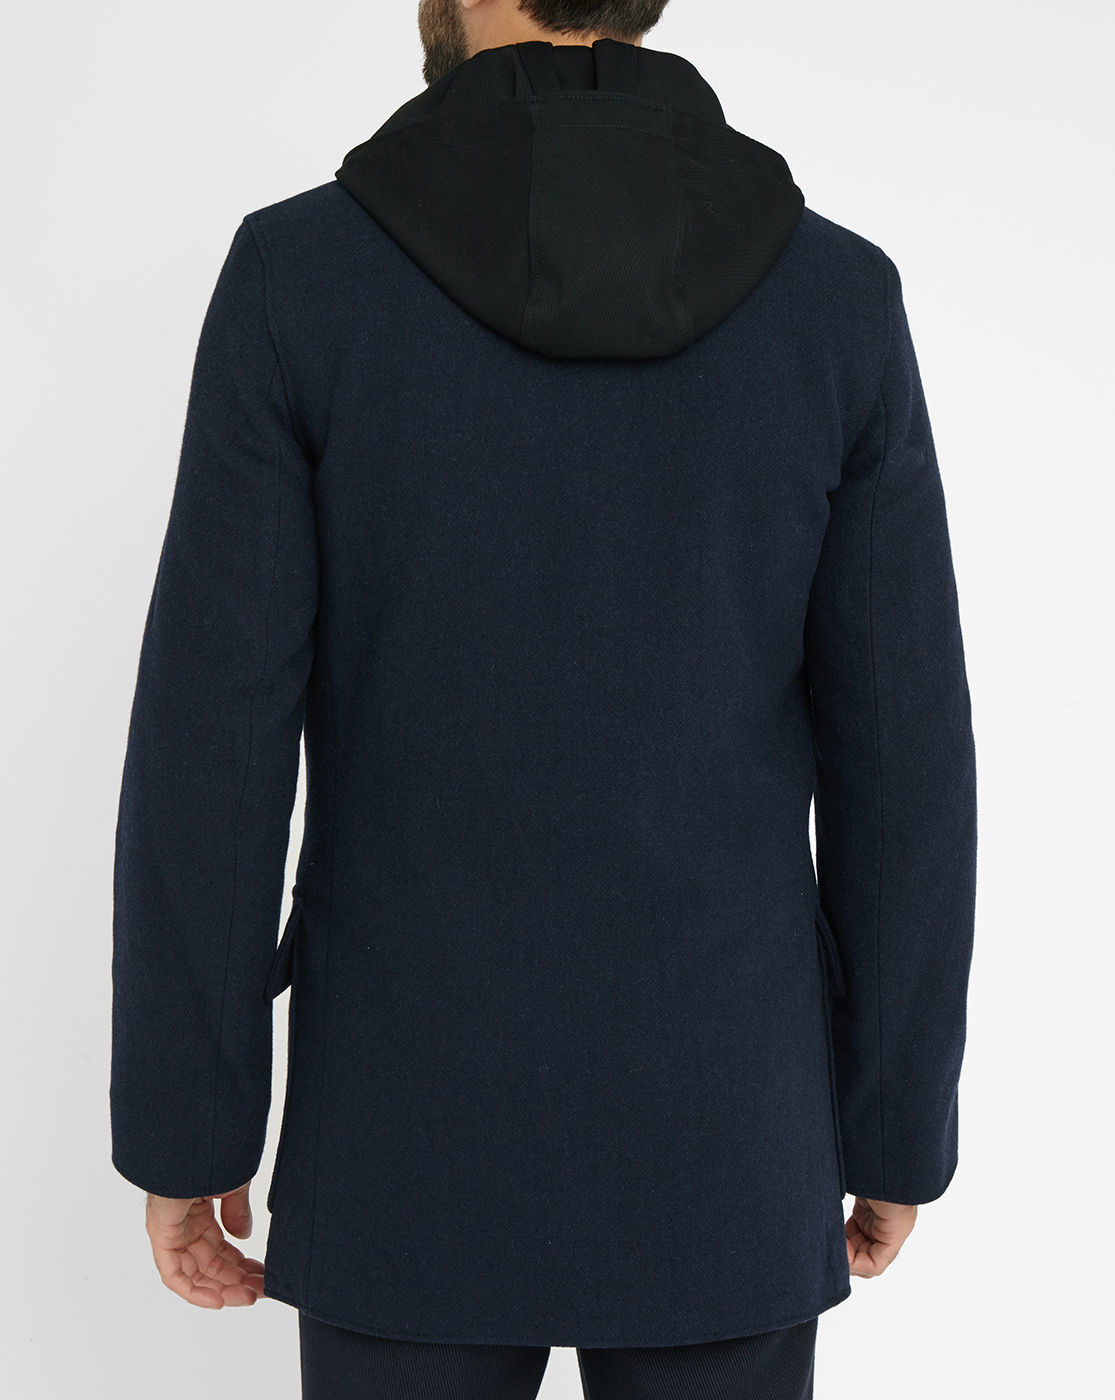 Acne Navy Melker Pea Coat With Contrasting Removable Hood ...